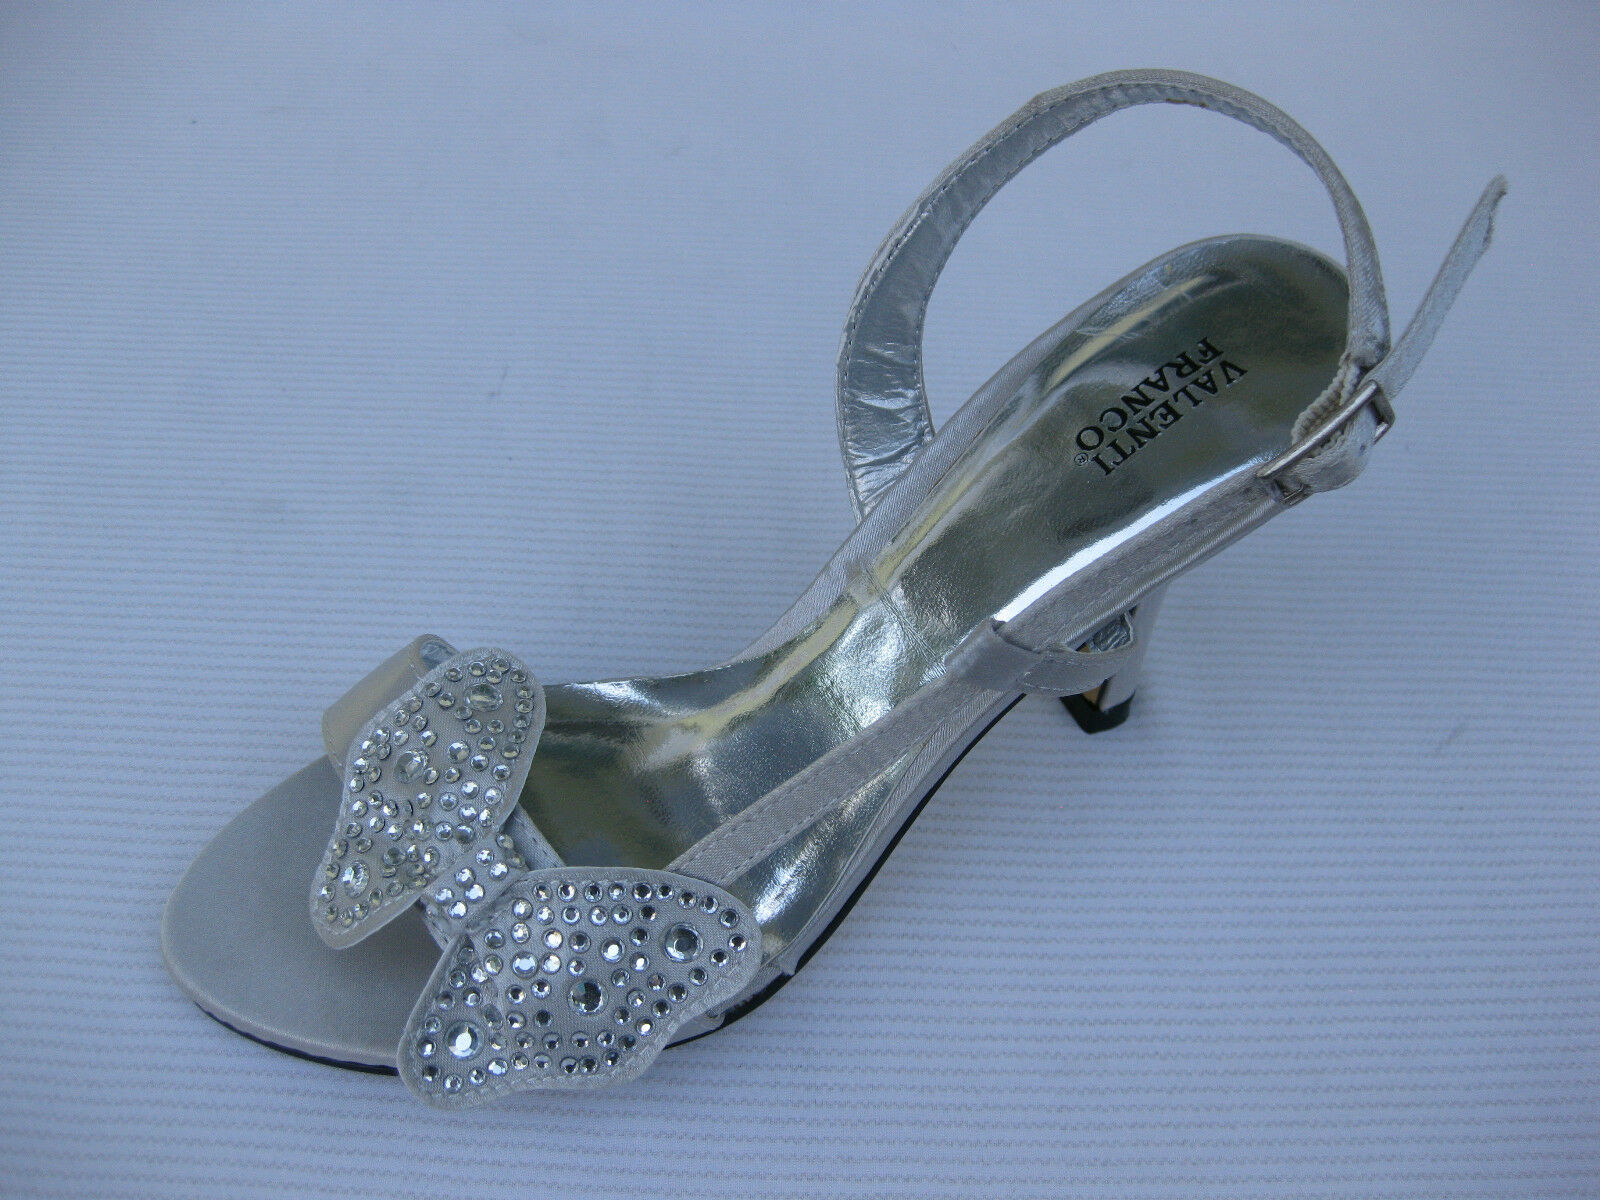 Valenti Franco Womens Shoes Satin $59 Adora Butterfly Silver Satin Shoes Sandal 6 M 42bc49